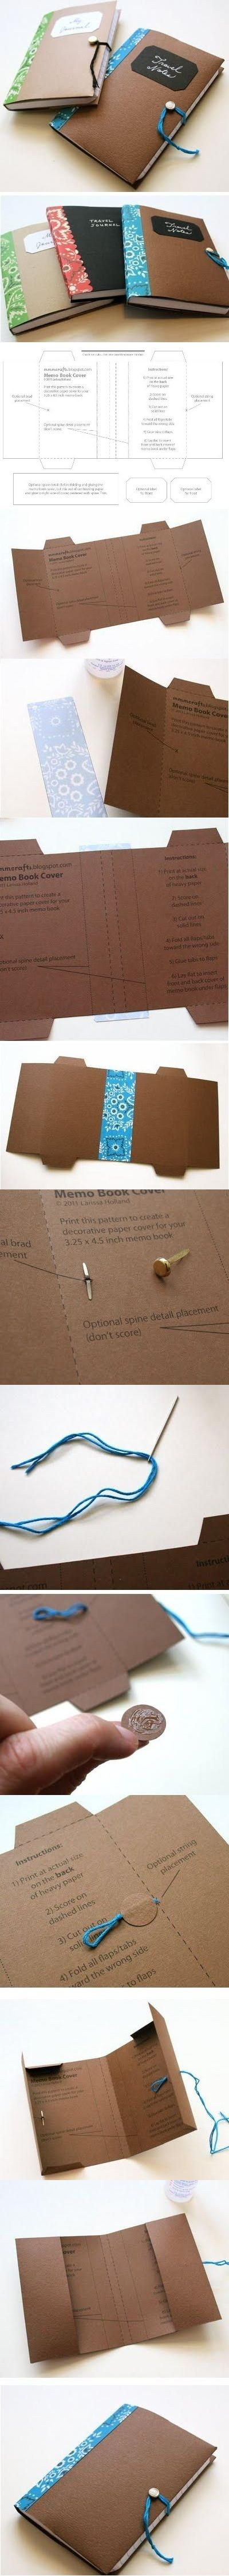 Diario decorado, agenda o libro de apuntes. Plantilla imprimible - Free Printable Template For A Handmade/Decorated Journal, Dayplanner or Memo Book. More